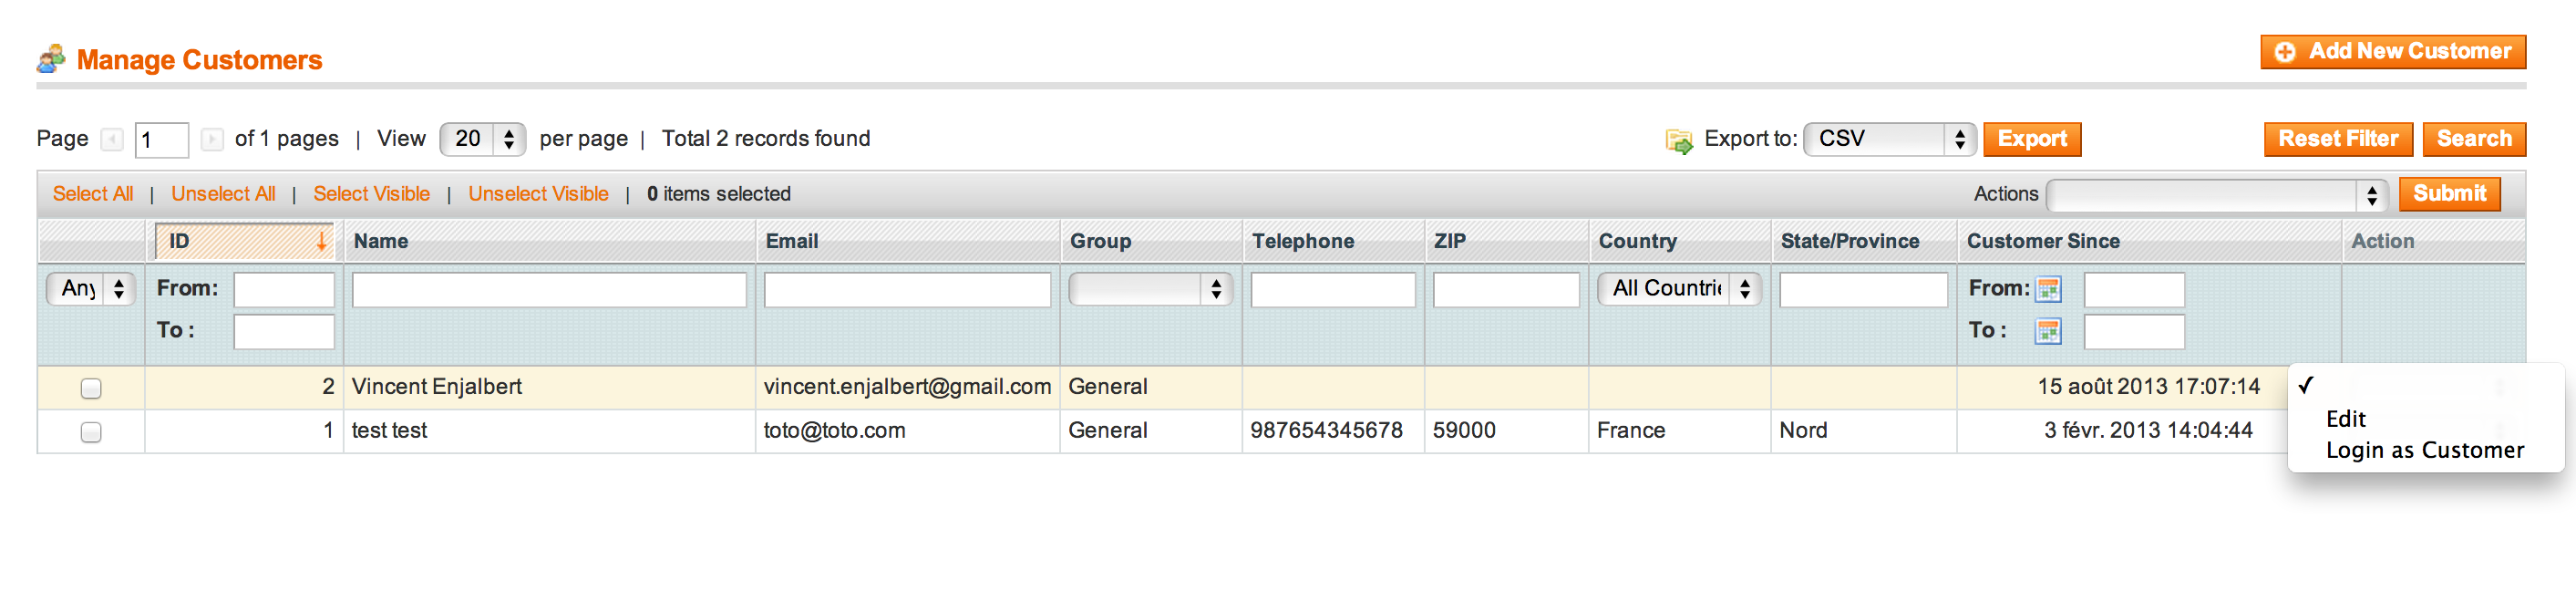 Magento login as customer from customer list page